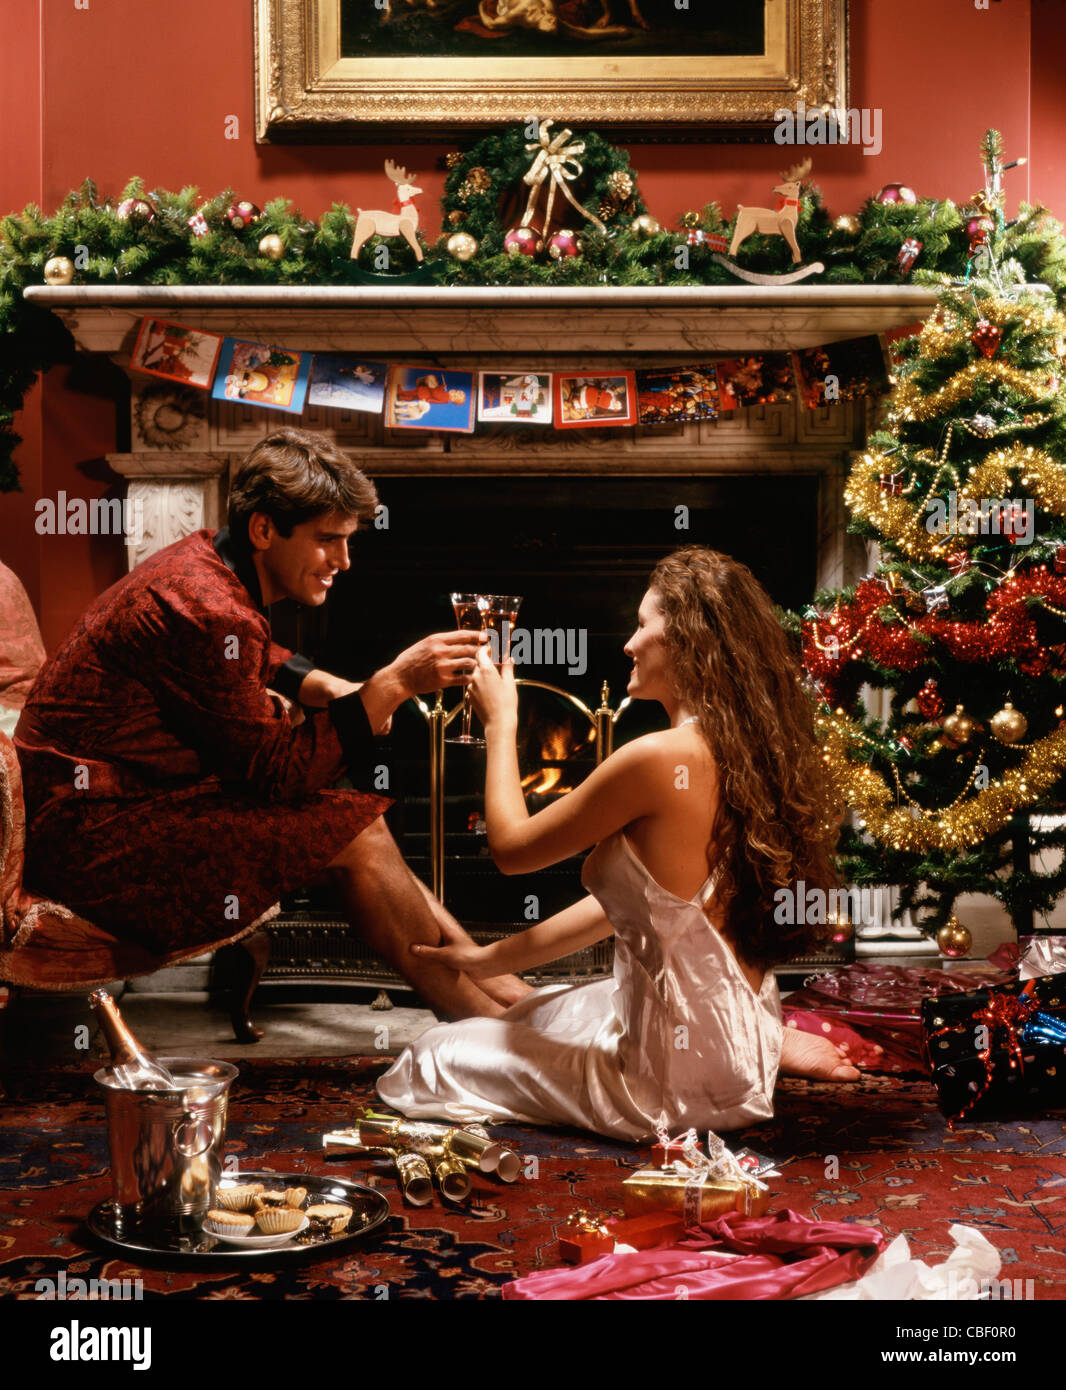 Christmas Couple By An Open Log Fire Stock Photo 41511876 Alamy